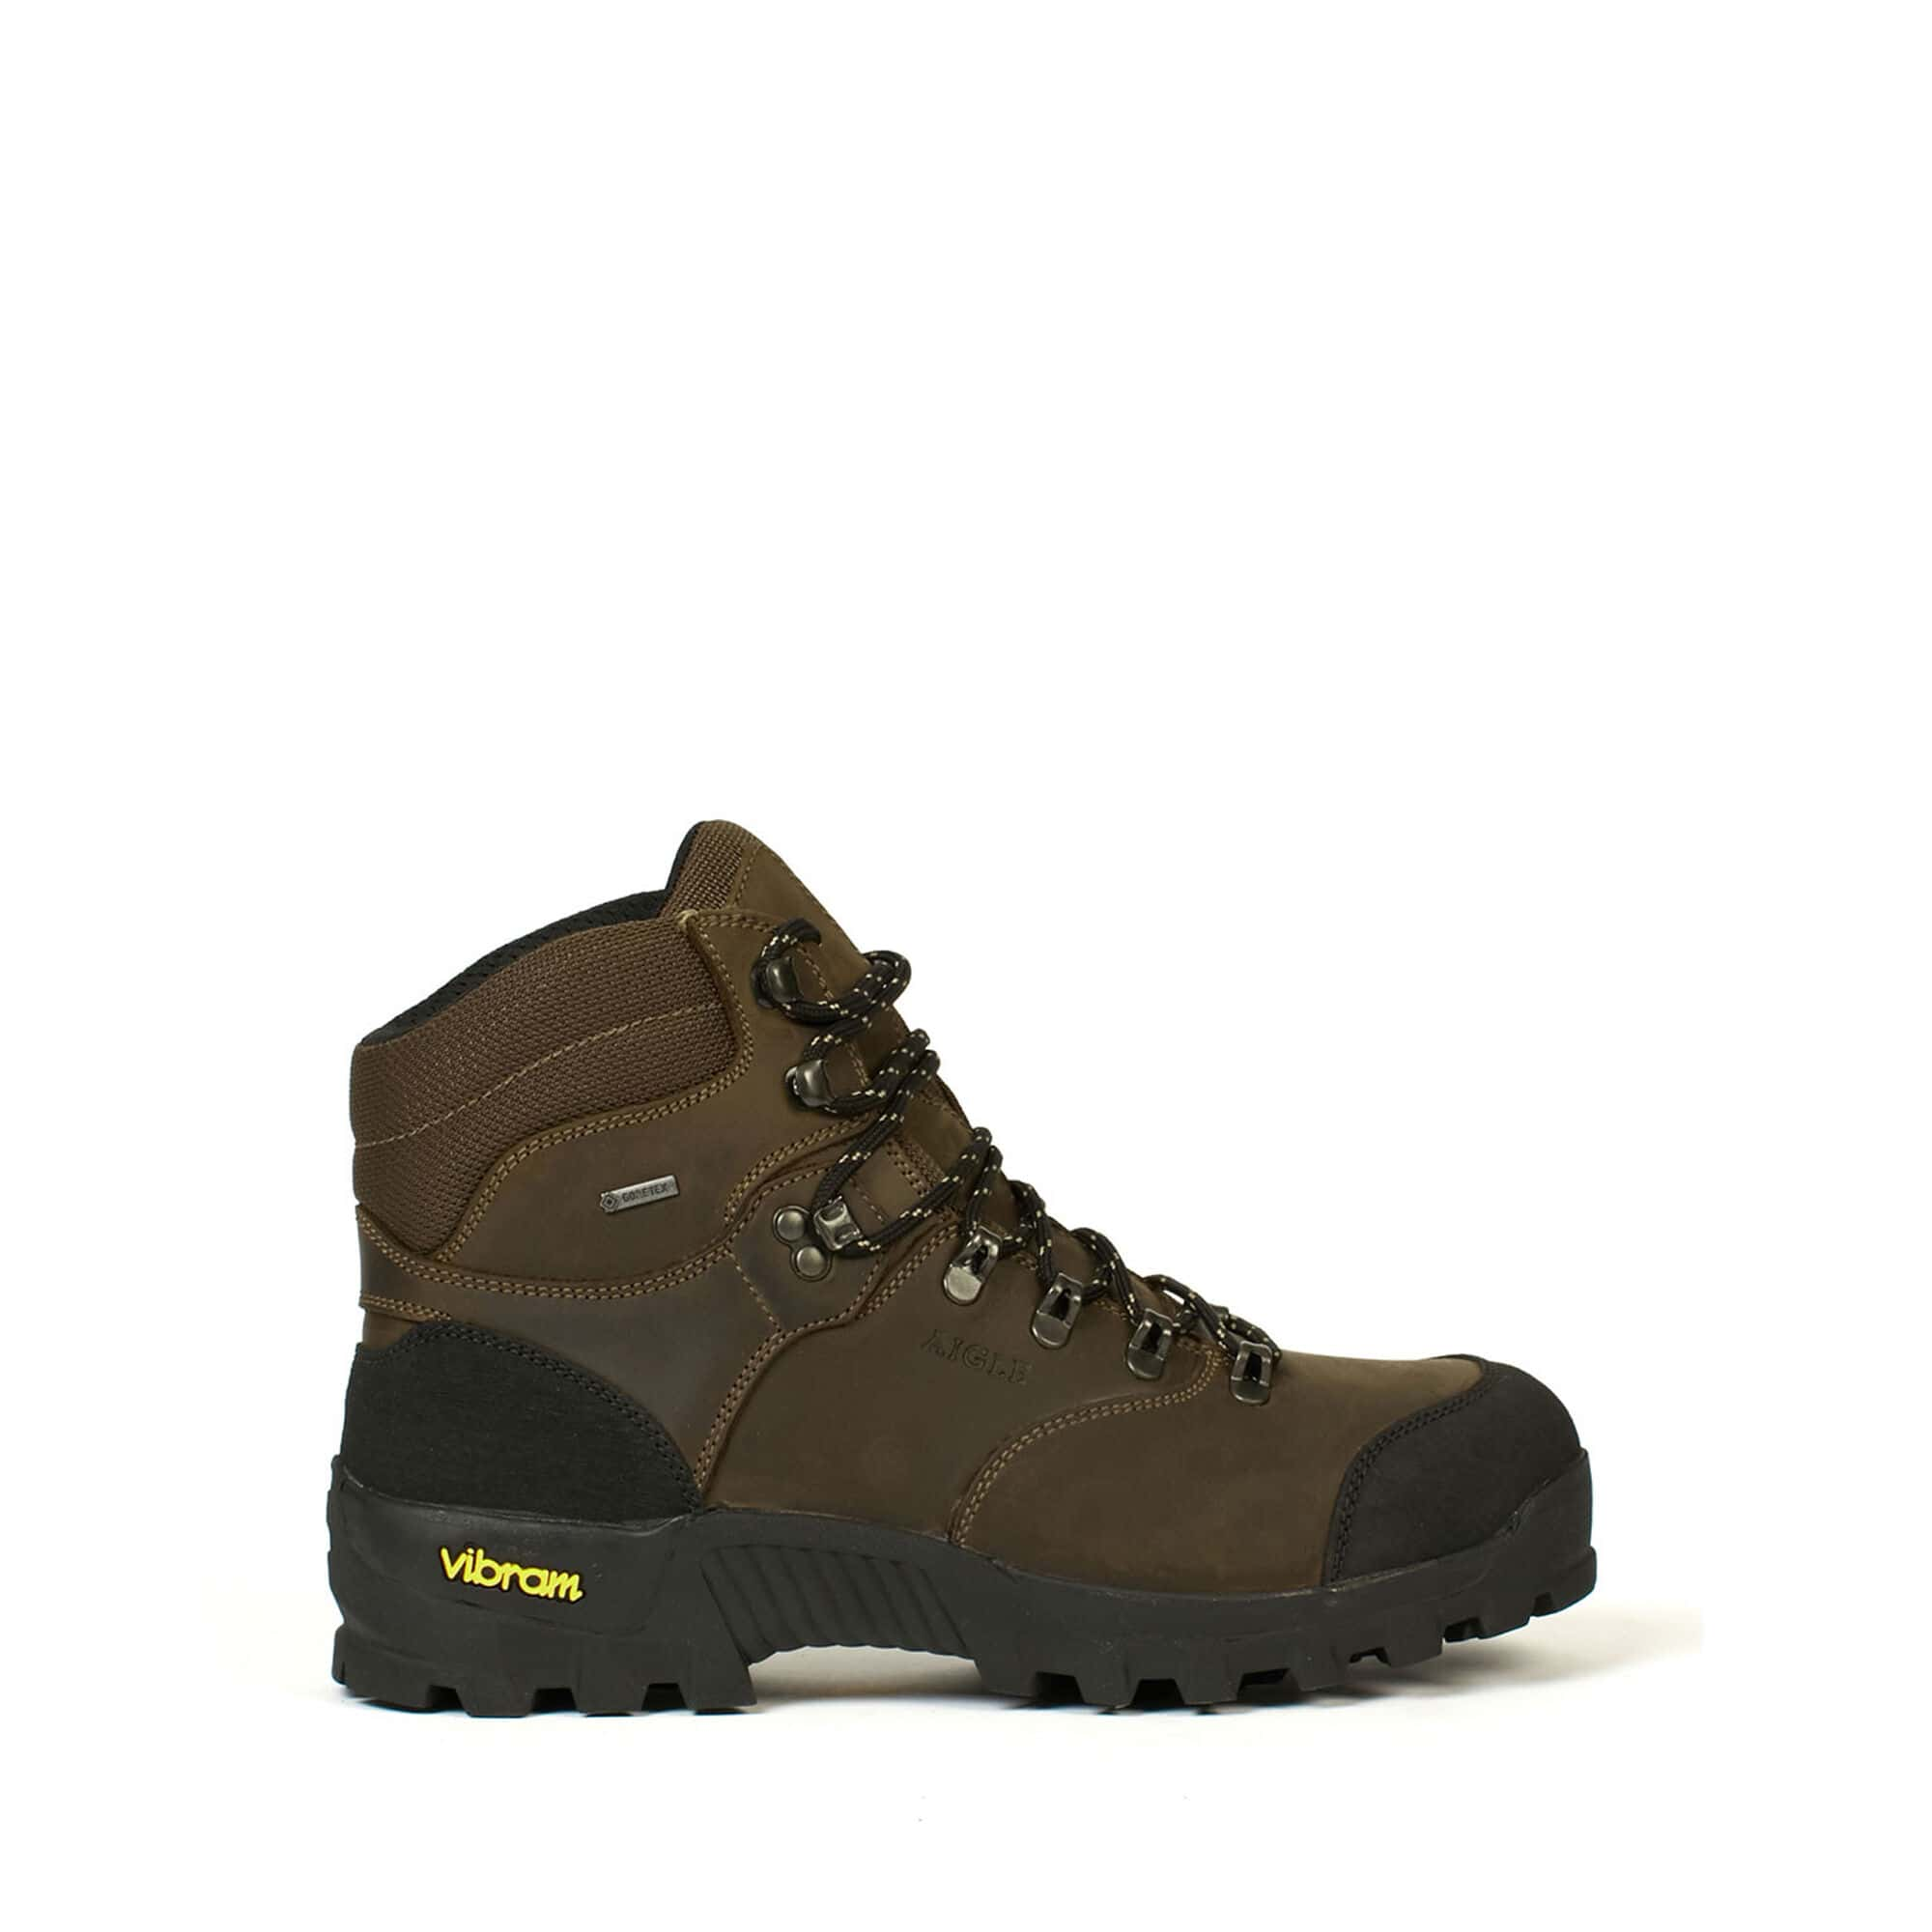 Chaussures cuir imperméable homme